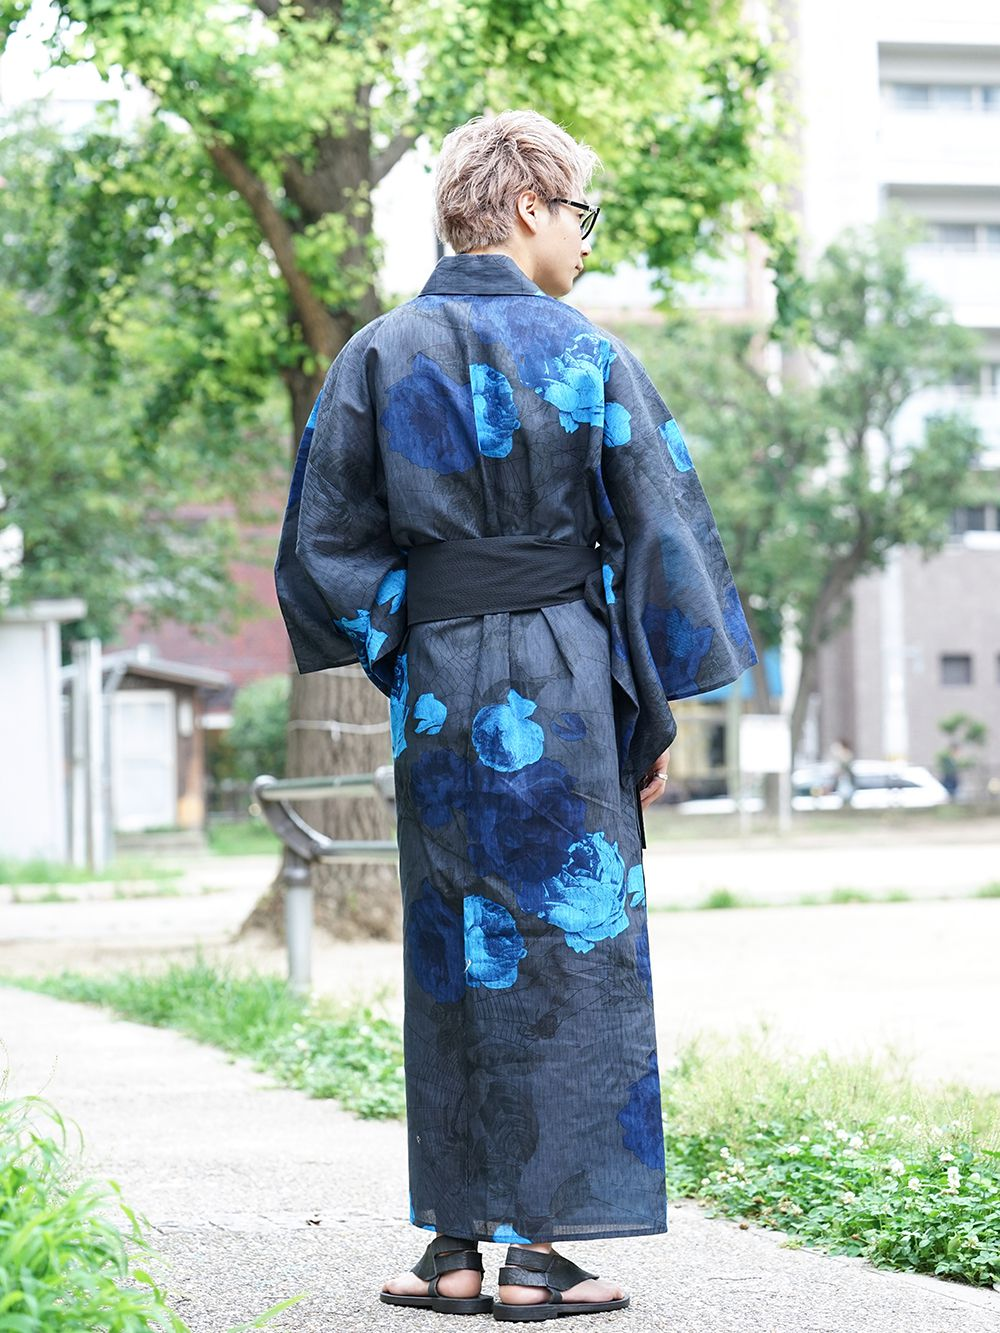 DIET BUTCHER SLIM SKIN 【YUKATA】 - 1-003